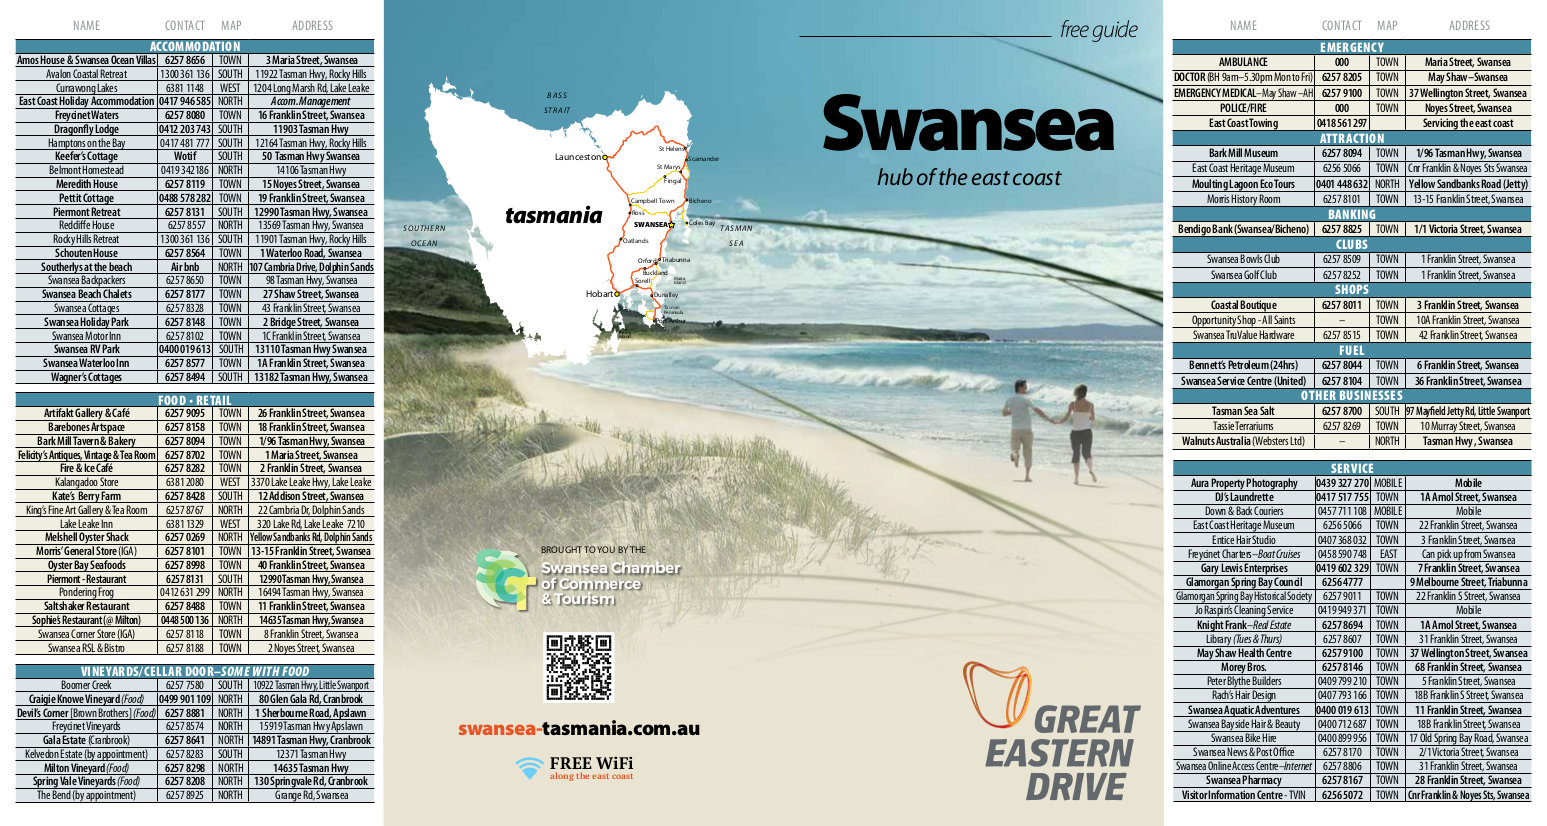 Swansea point of interest listings